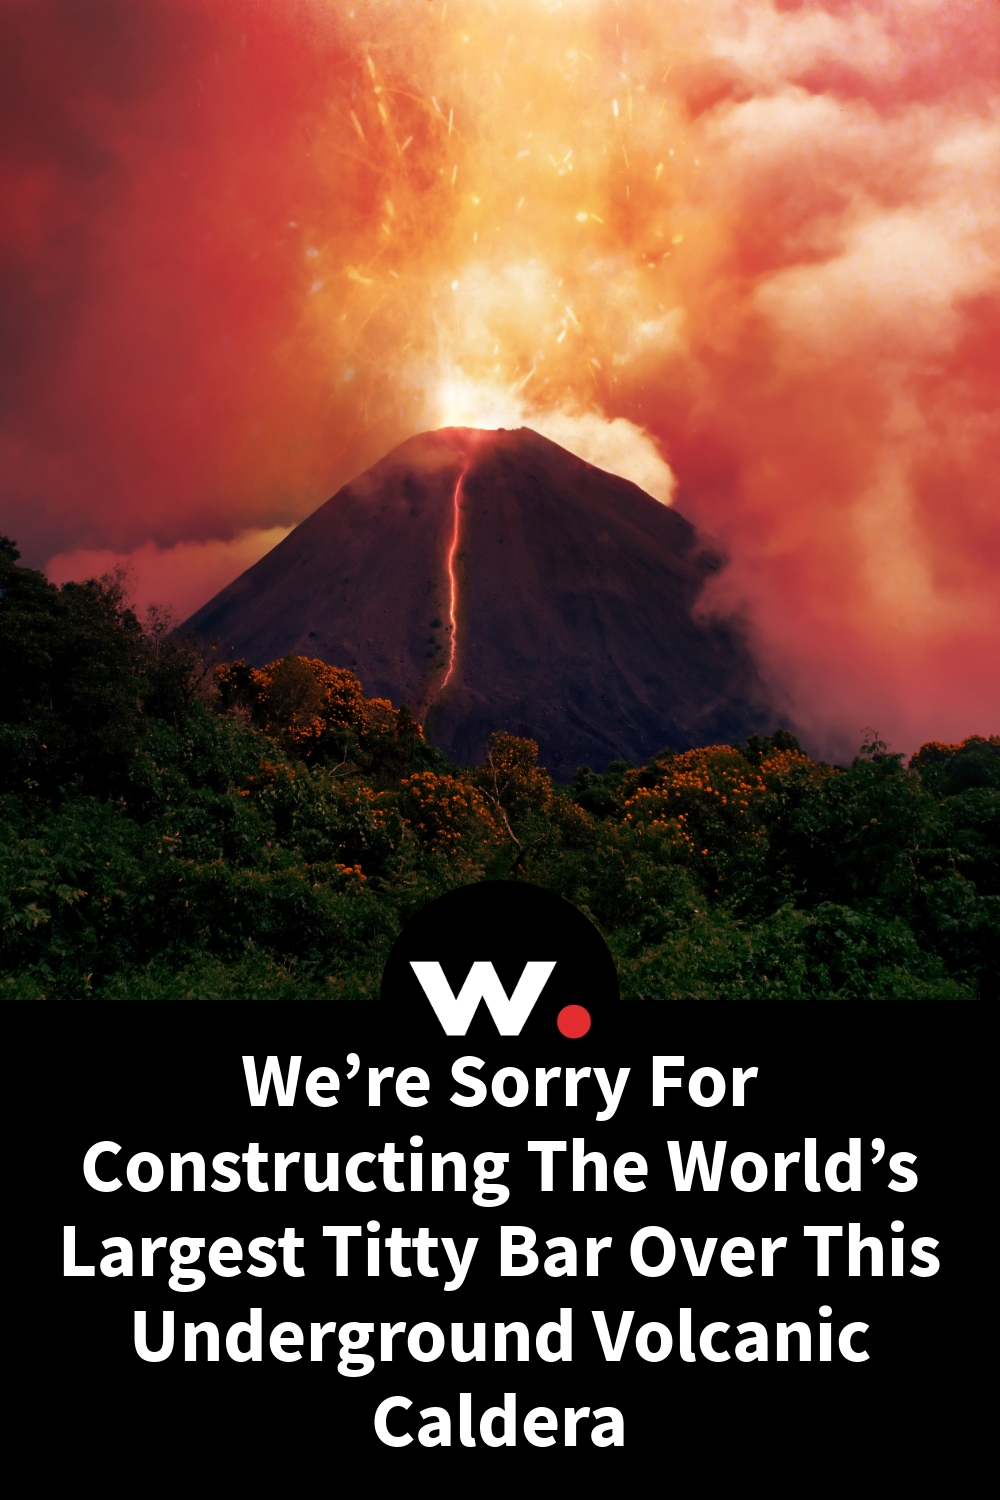 We're Sorry For Constructing The World's Largest Titty Bar Over This Underground Volcanic Caldera